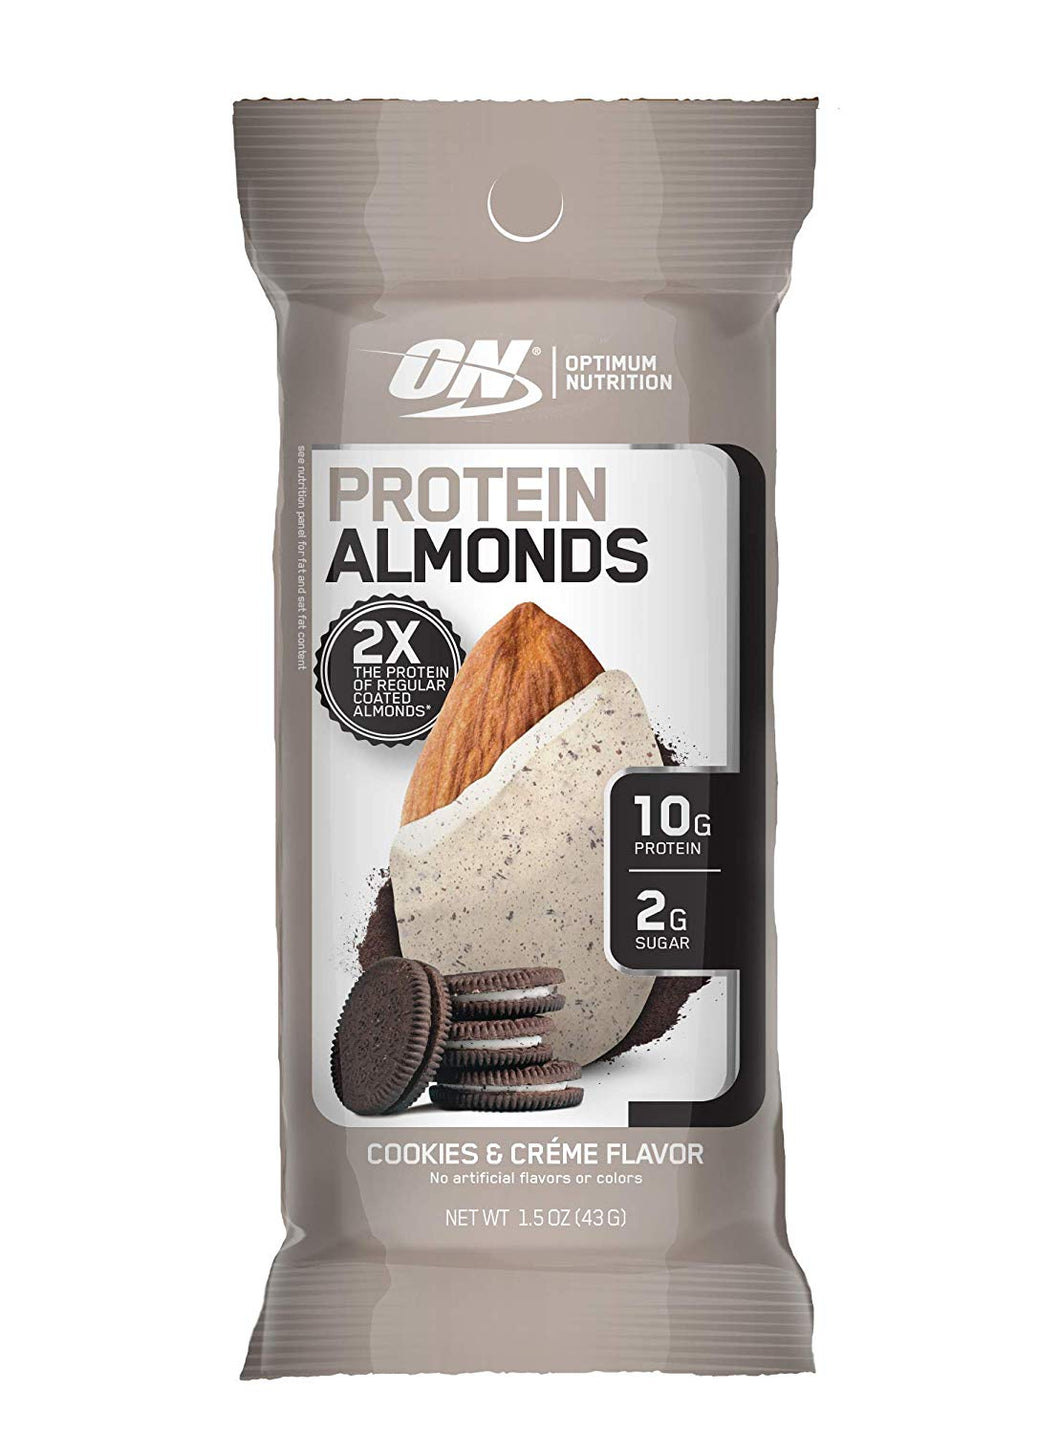 Optimum Nutrition - Protein Almonds - Cookies & Creme Flavour